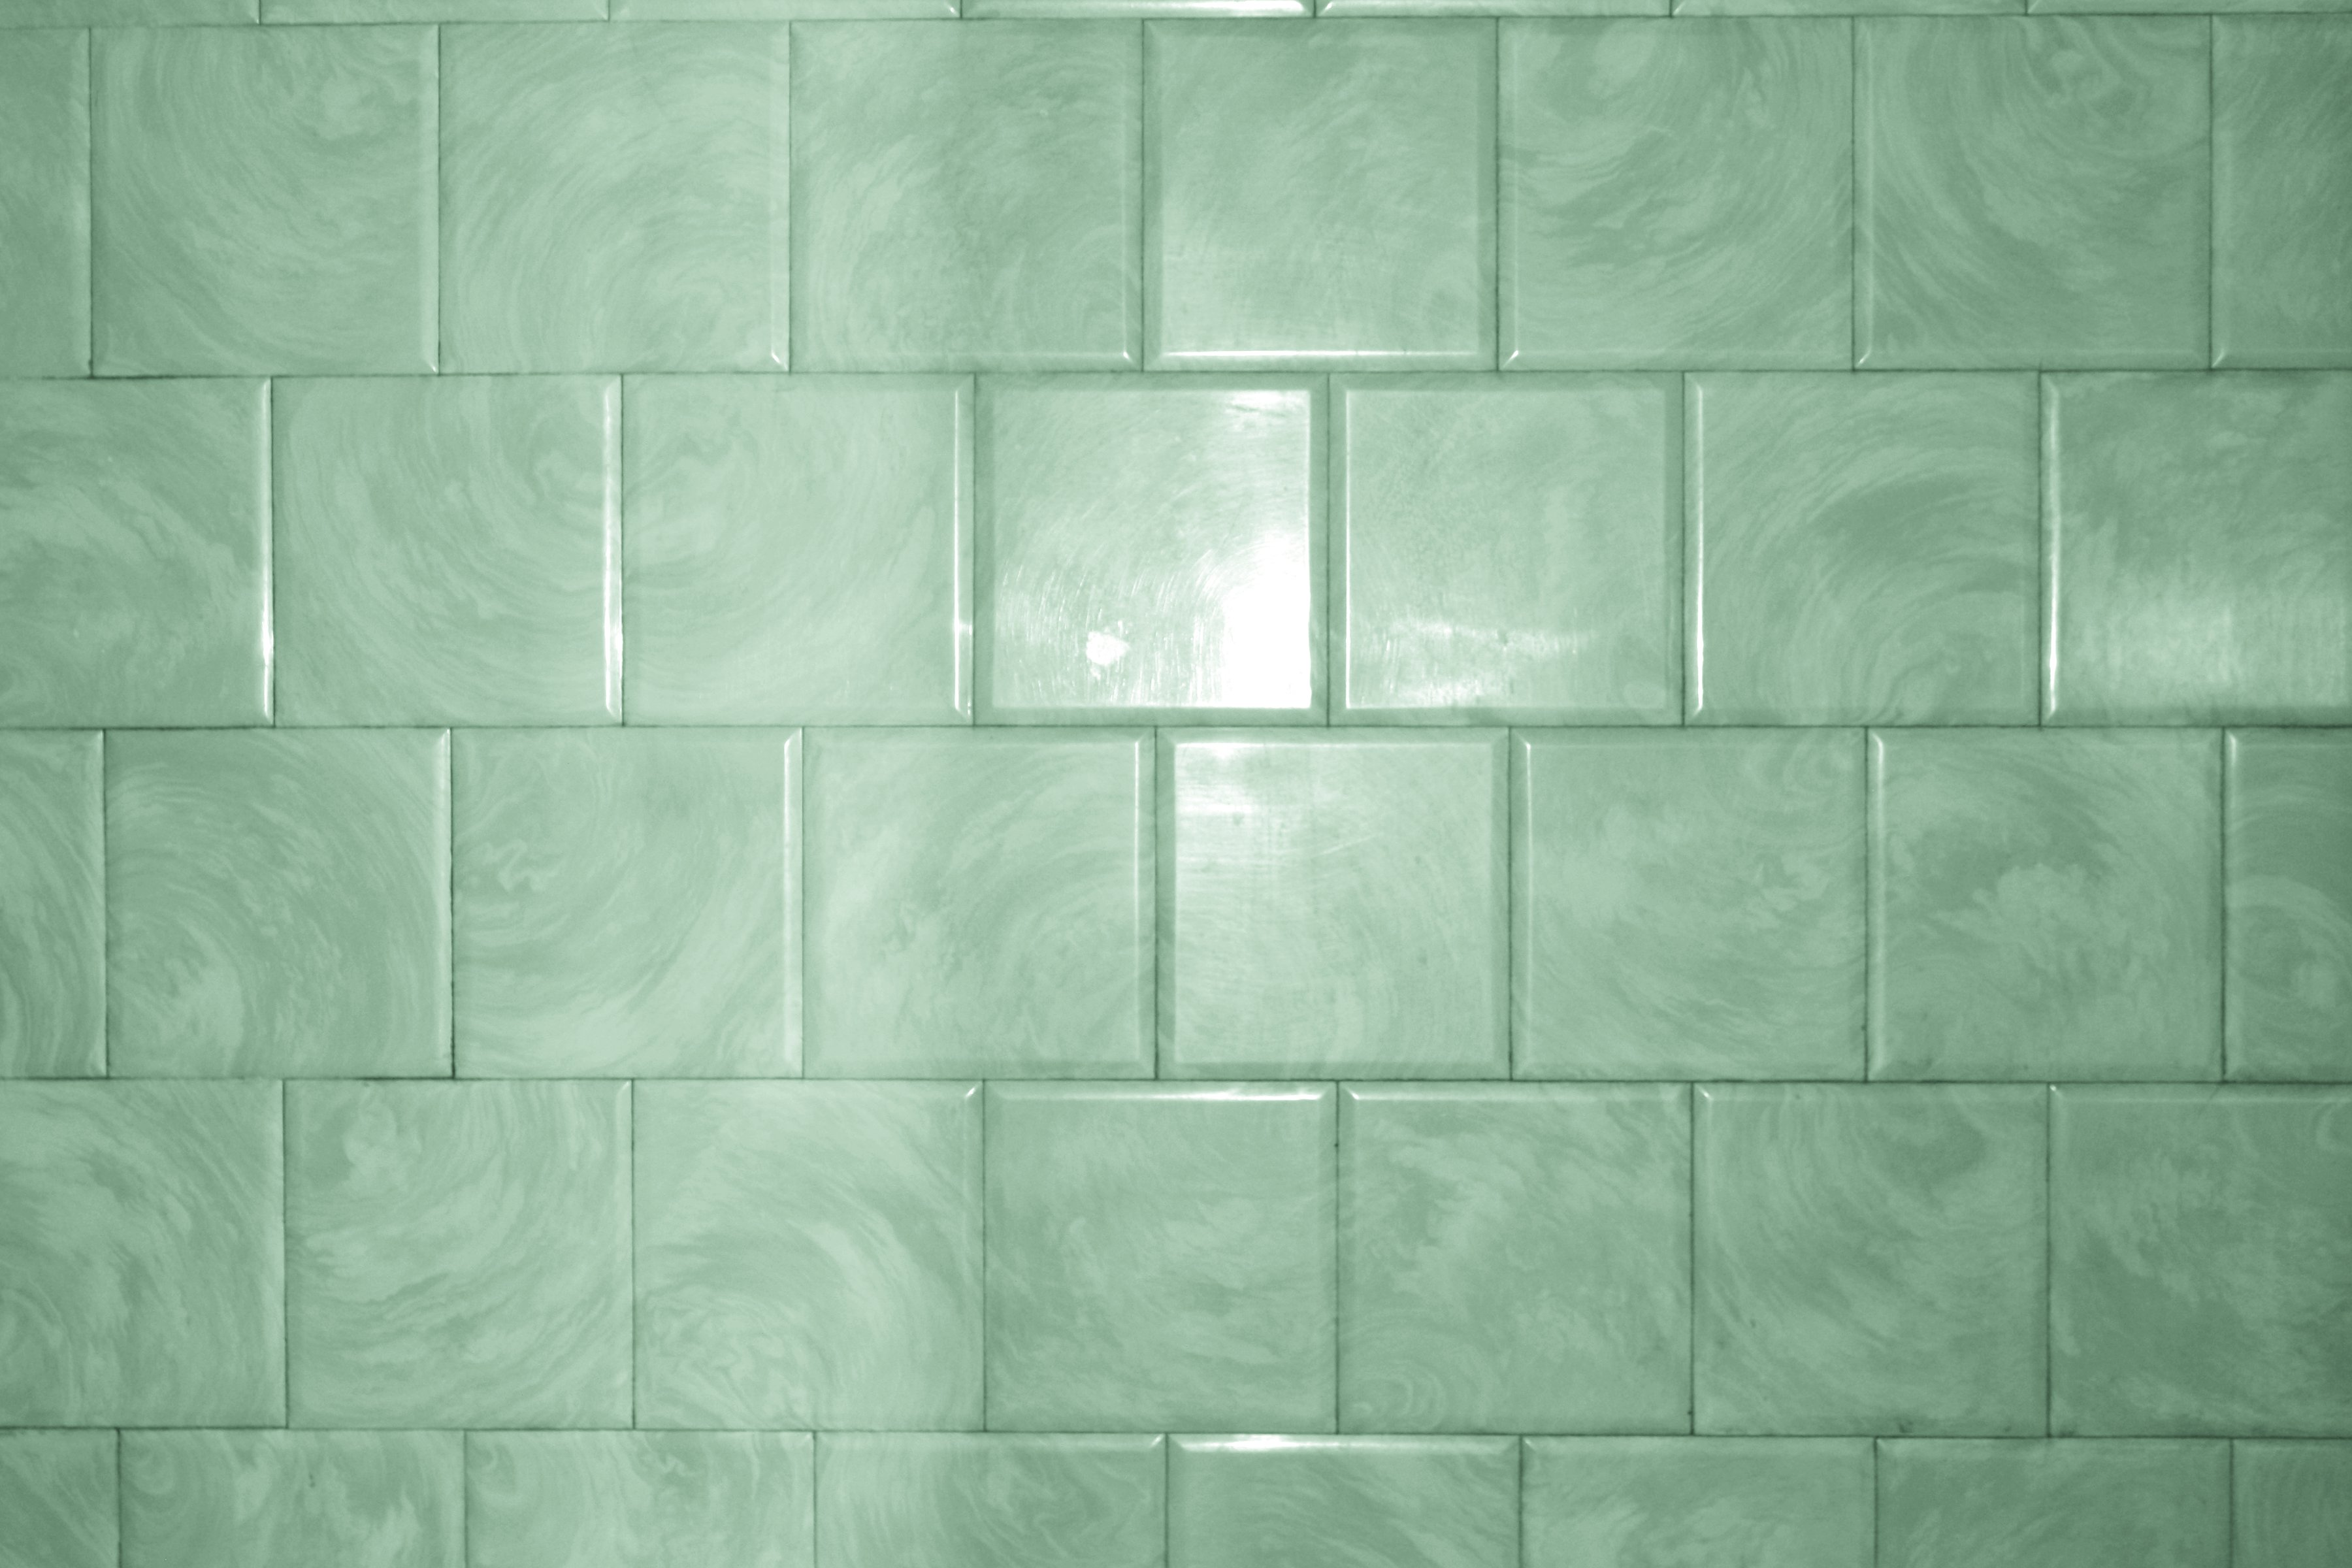 Green tiles for bathroom -  Green Bathroom Tile With Swirl Pattern Texture Download